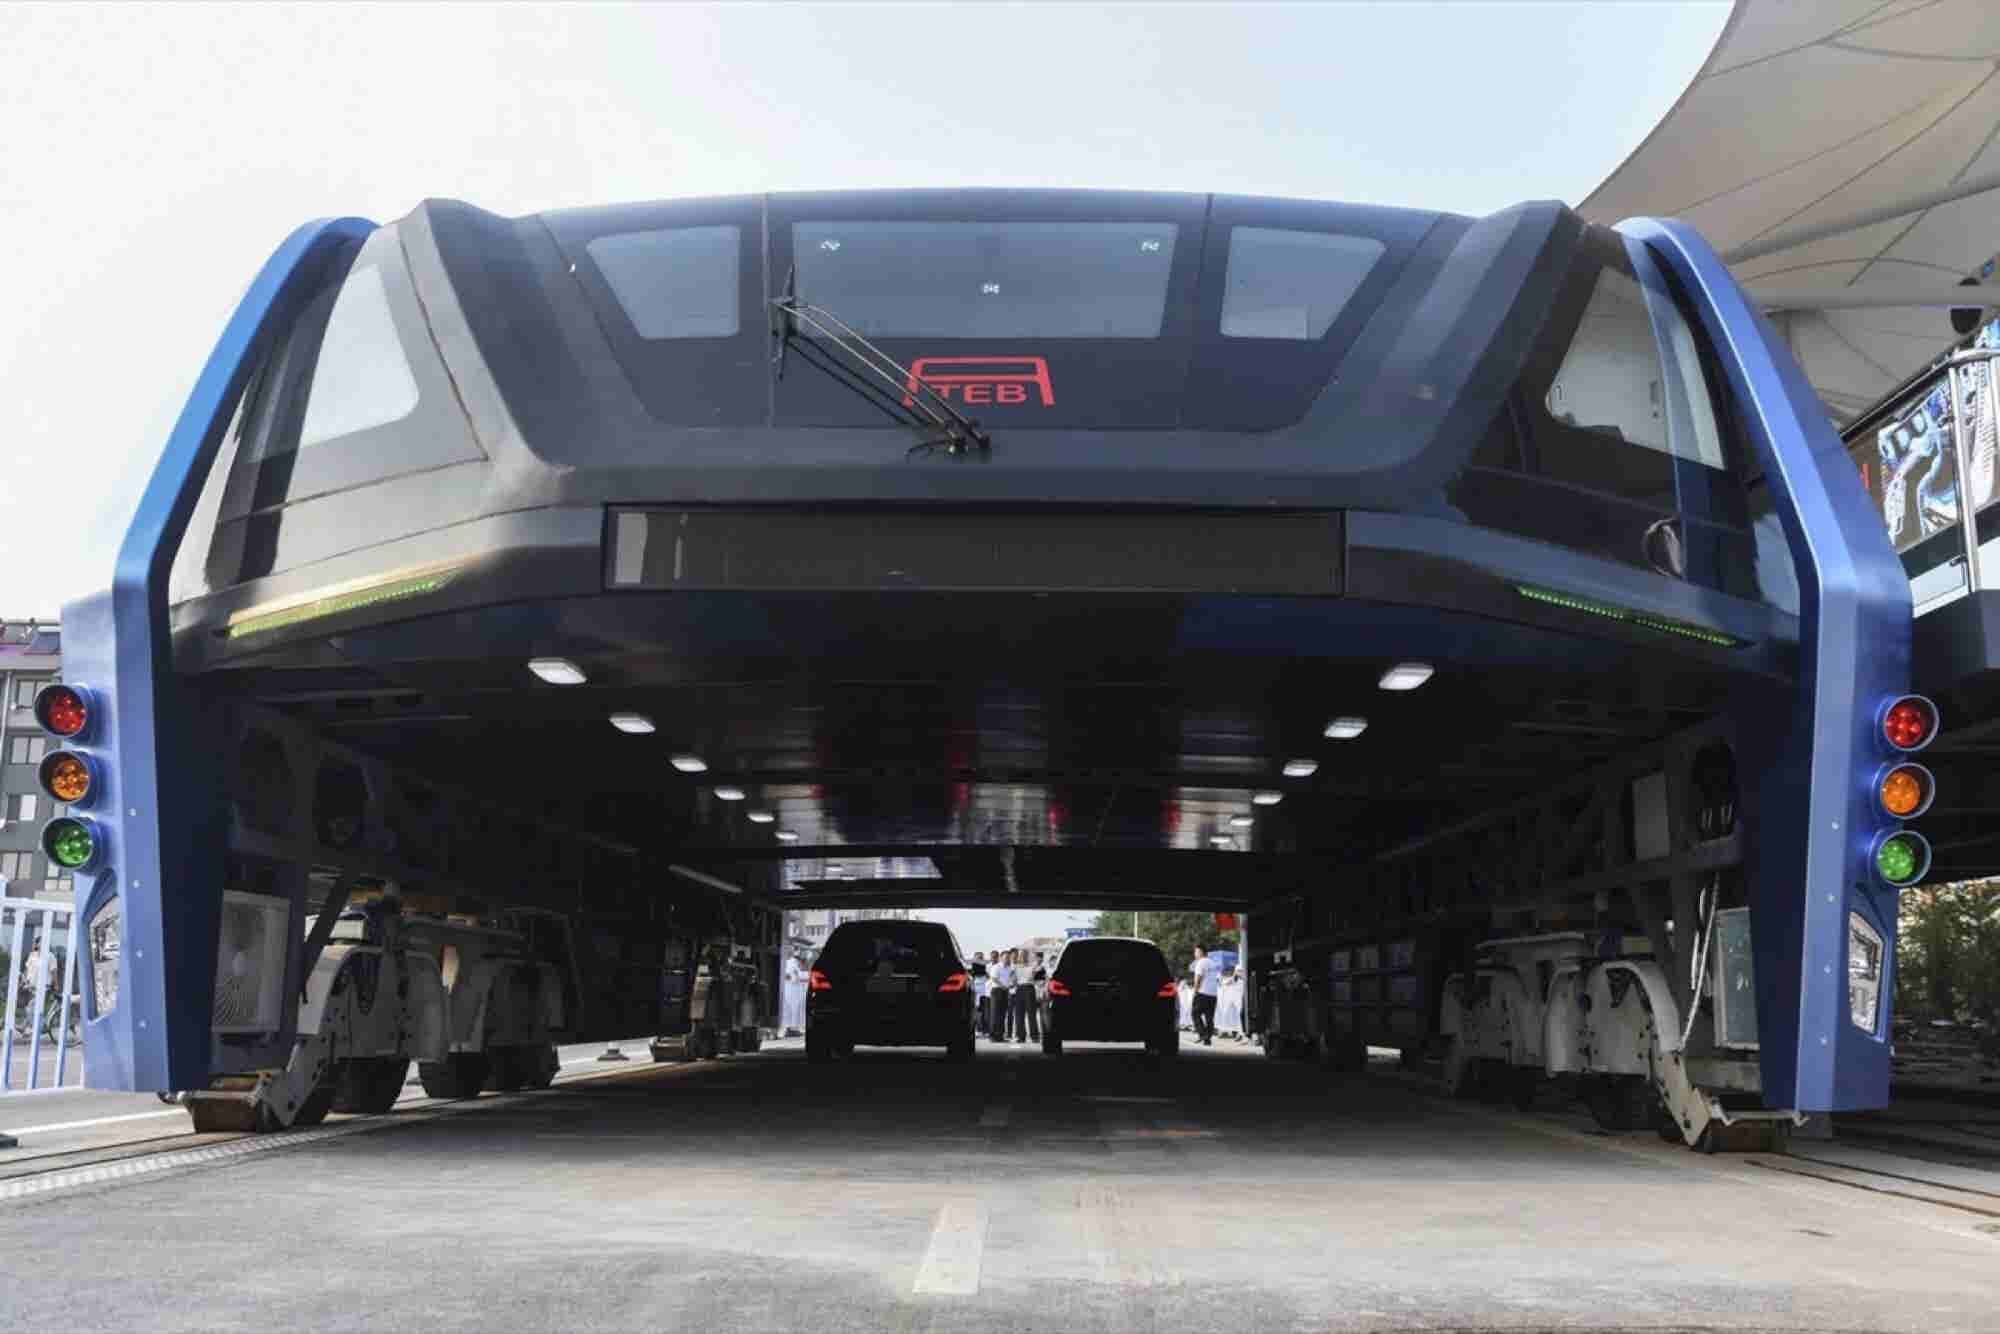 China's Car-Swallowing Bus Is Apparently for Real